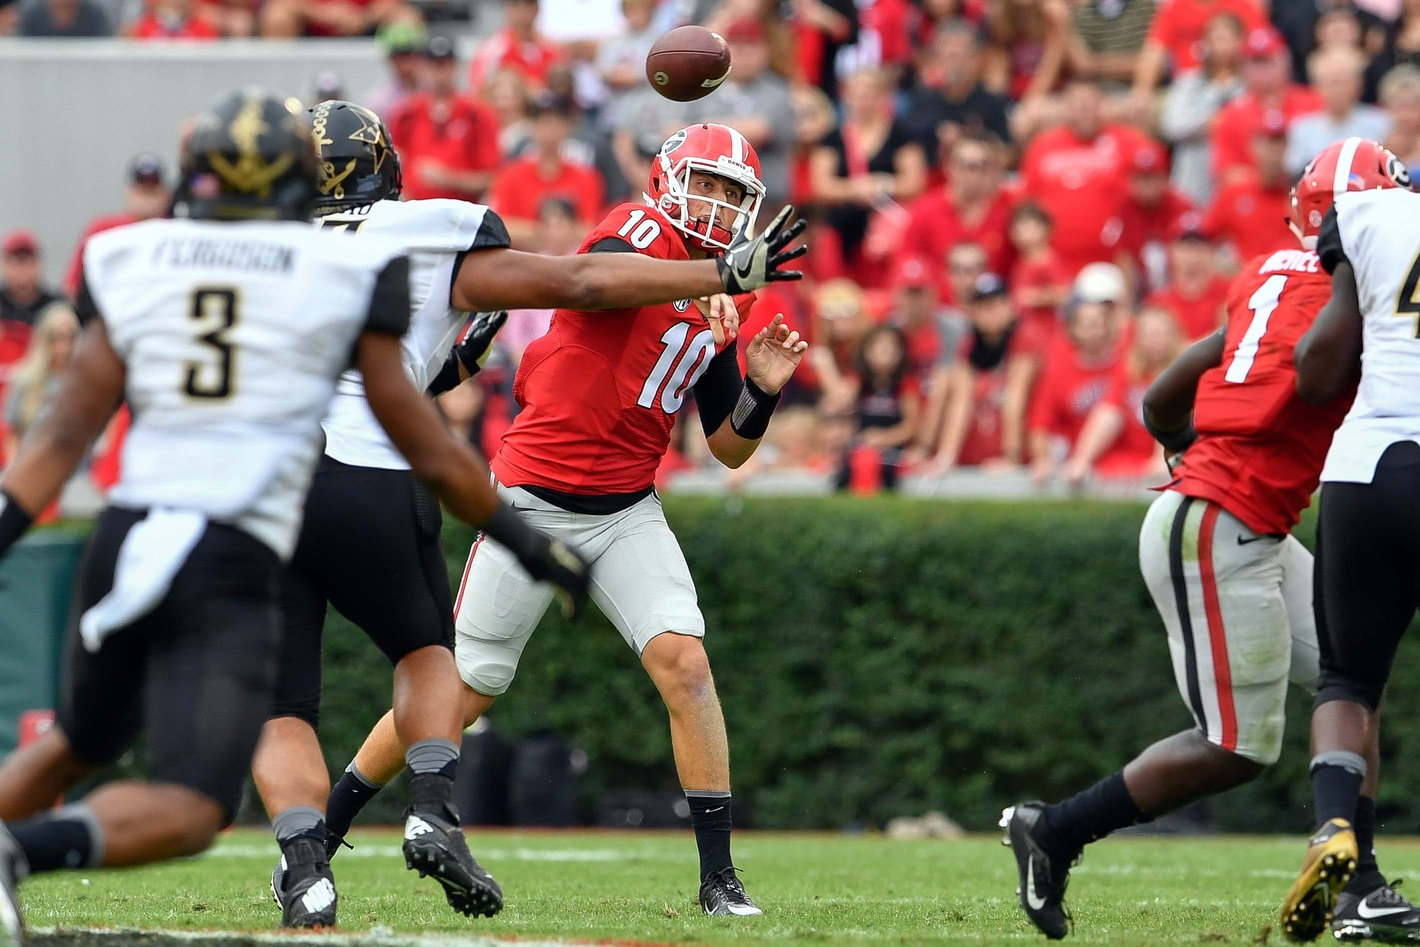 Oct 15, 2016; Athens, GA, USA; Georgia Bulldogs quarterback Jacob Eason (10) passes the ball against the Vanderbilt Commodores during the second half at Sanford Stadium. Vanderbilt defeated Georgia 17-16. Mandatory Credit: Dale Zanine-USA TODAY Sports